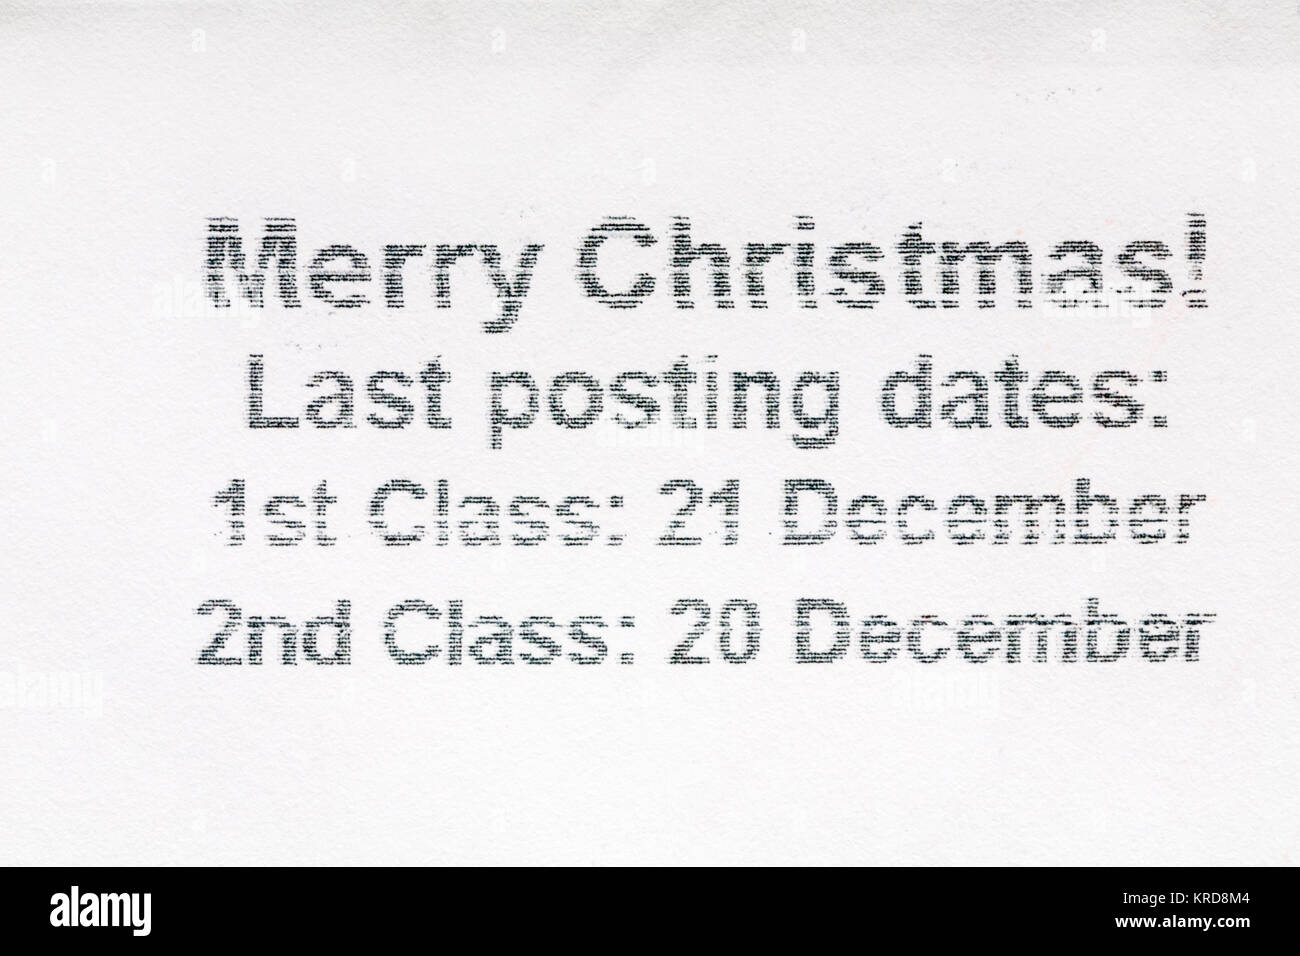 Last posting dates for Christmas information on envelope - Stock Image